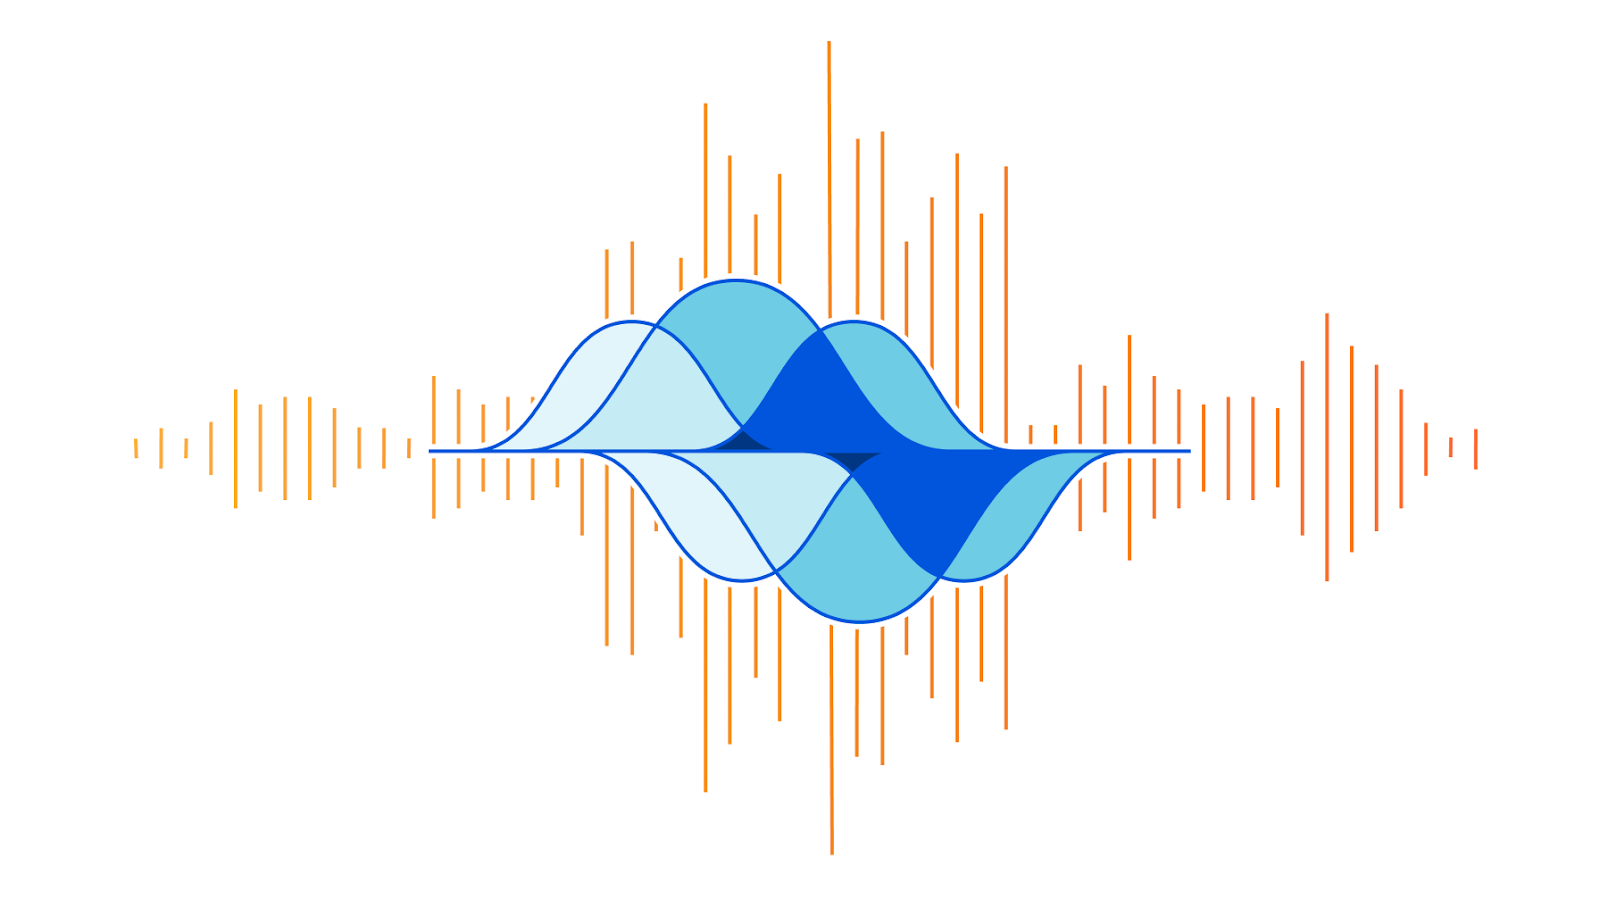 Beat - An Acoustics Inspired DDoS Attack